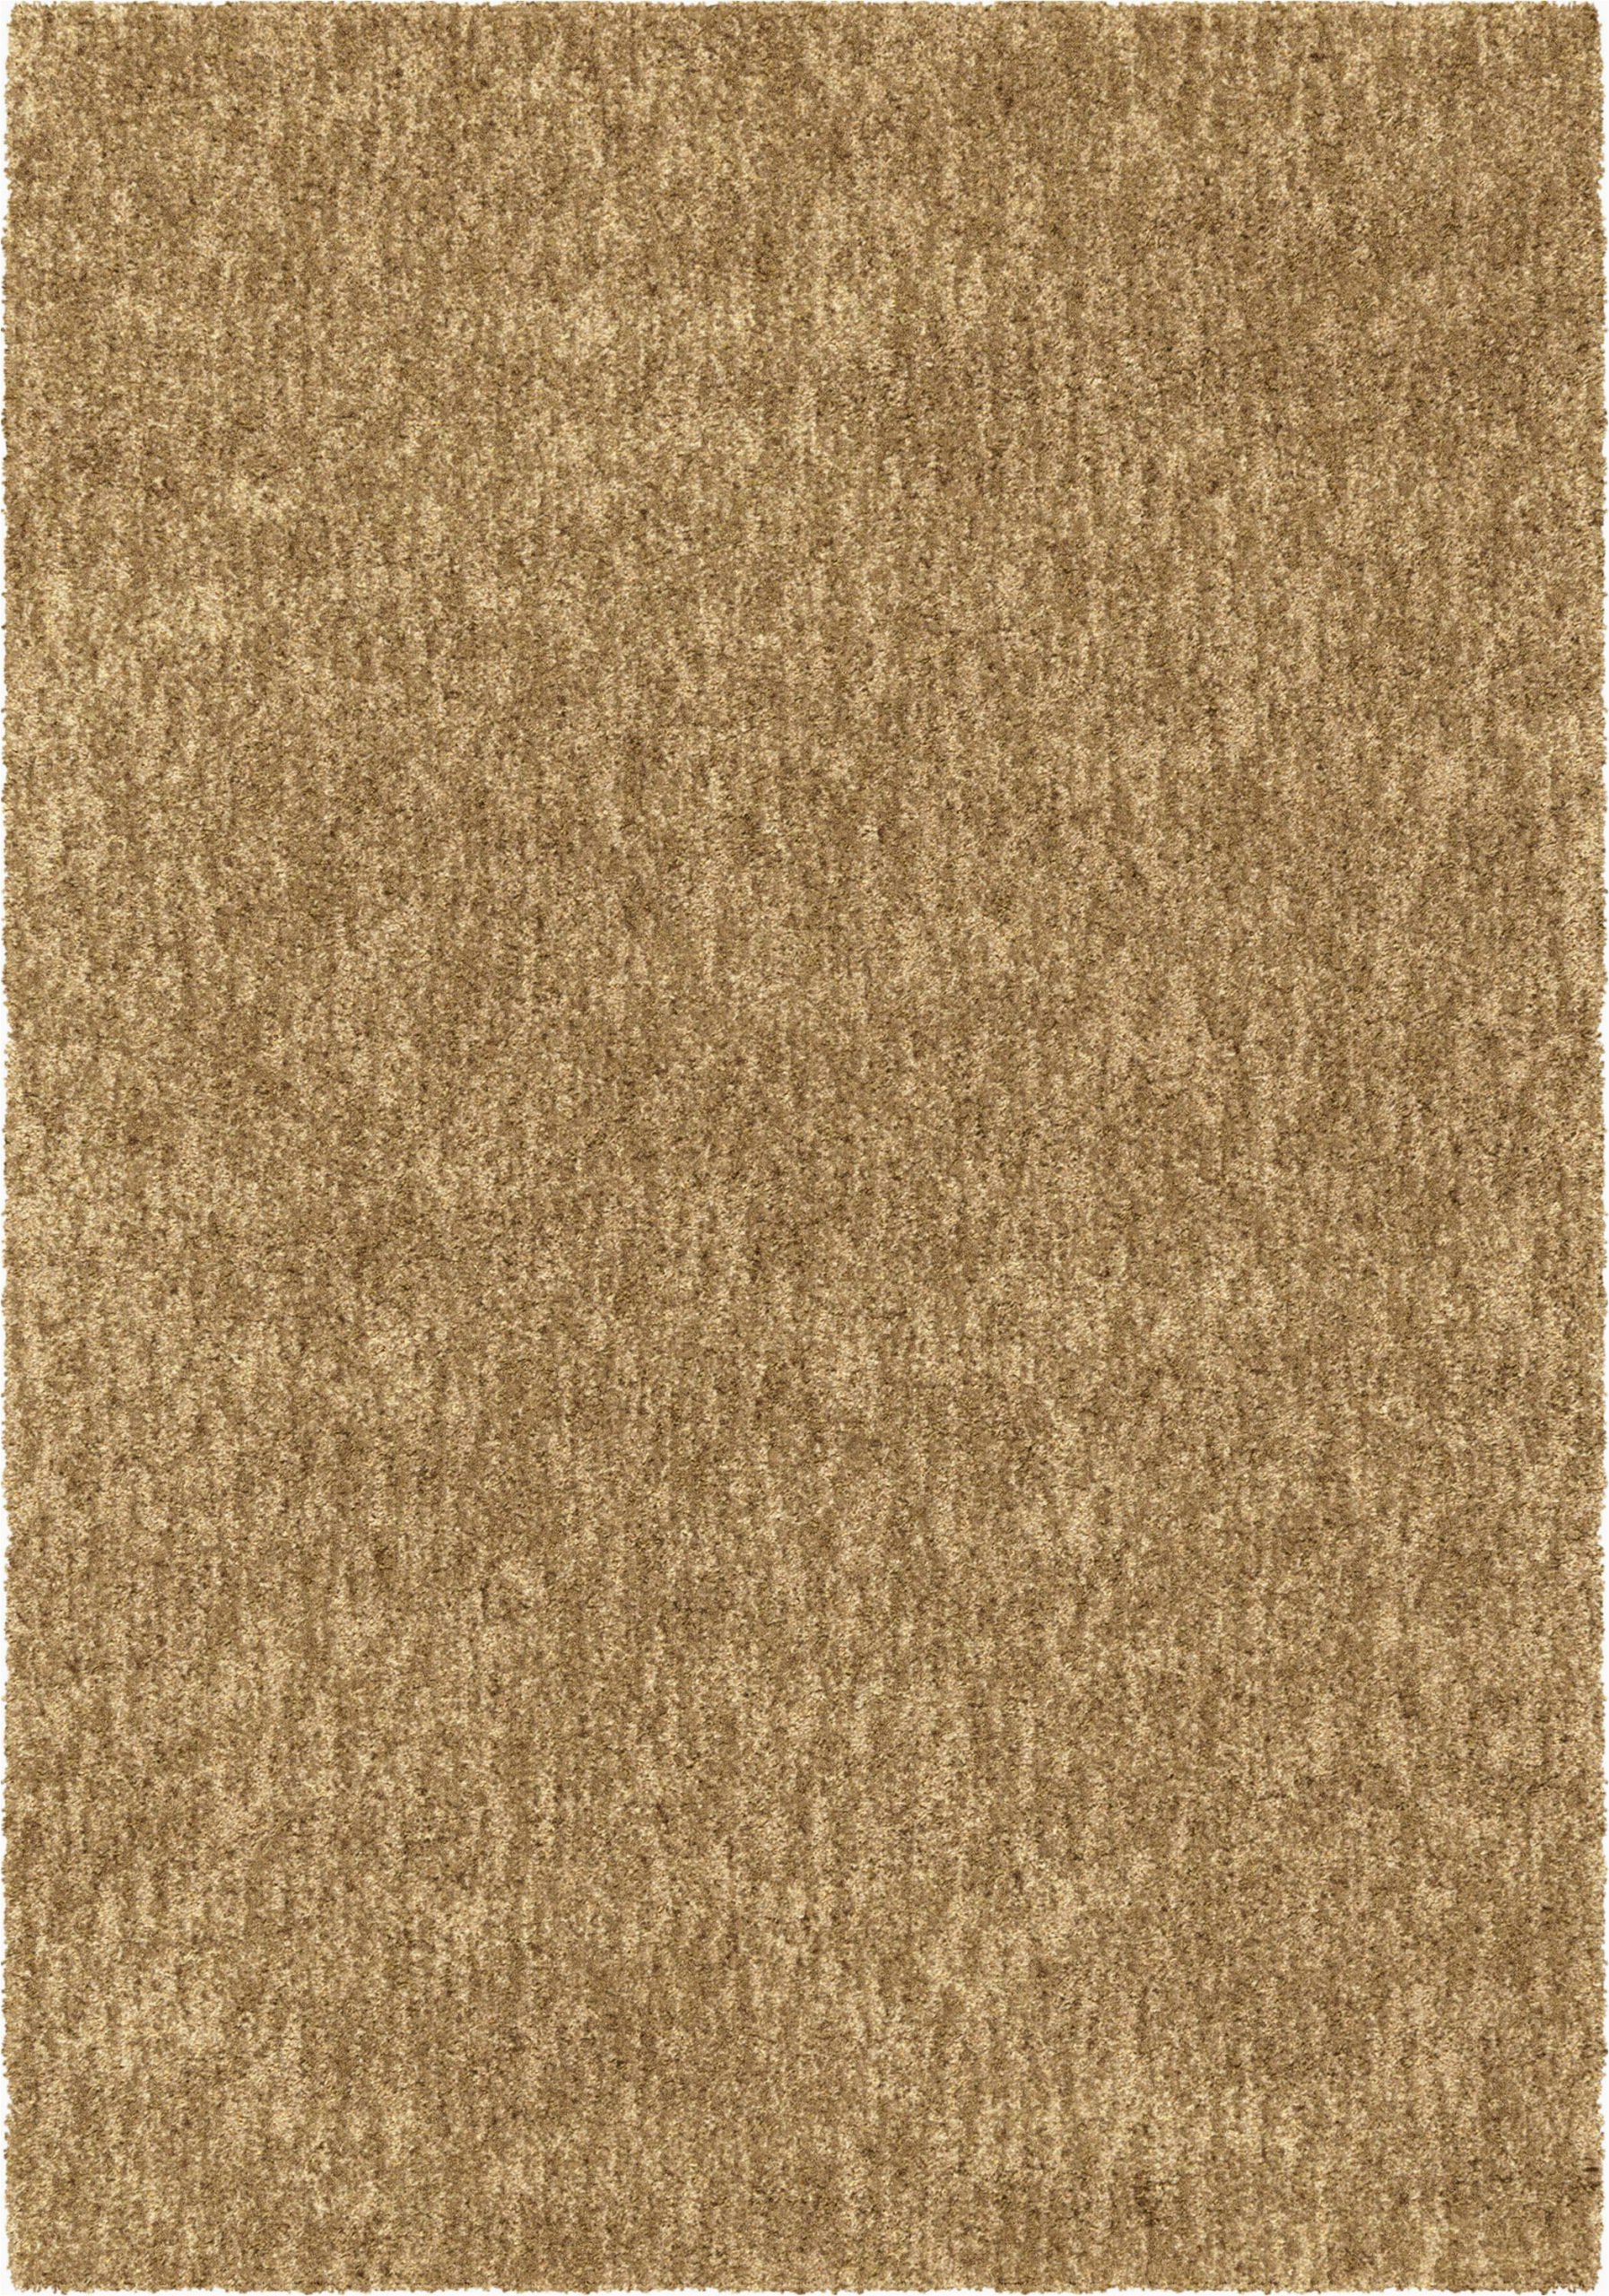 "Cheap solid Color area Rugs solid Rug Color Peat Size 7 10"" X 10 10"""